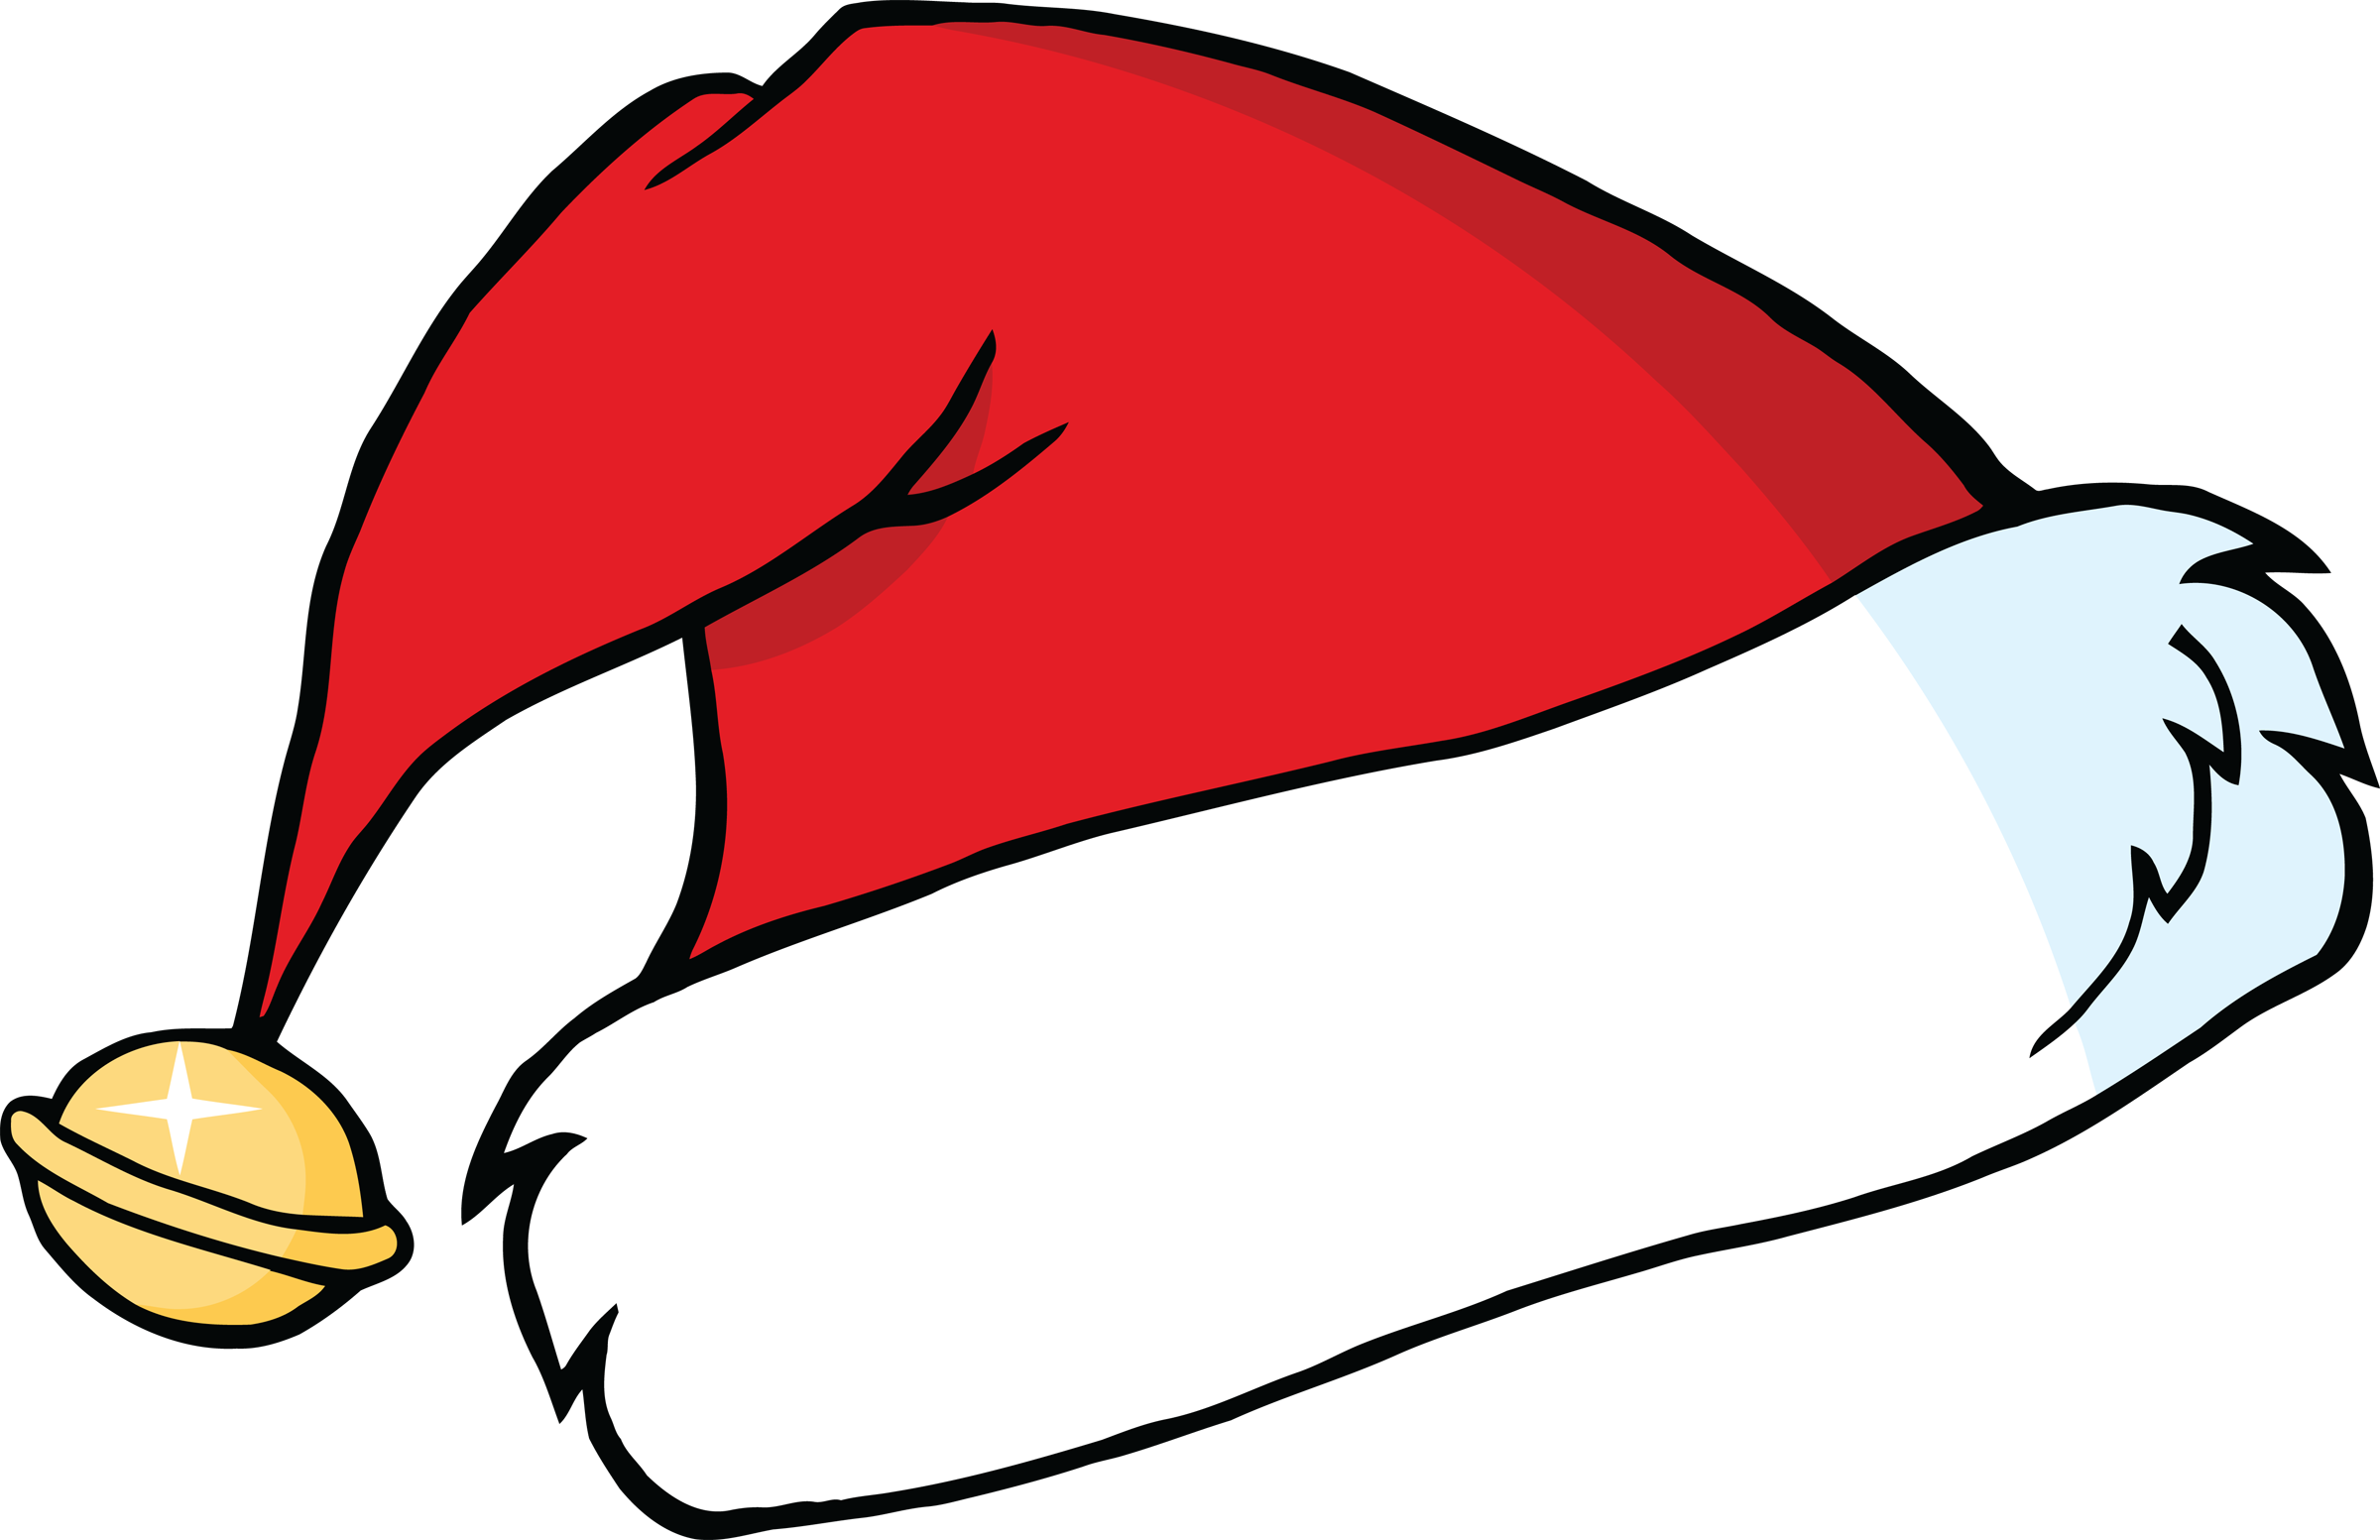 Santa clipart easy. Cap group santas hat